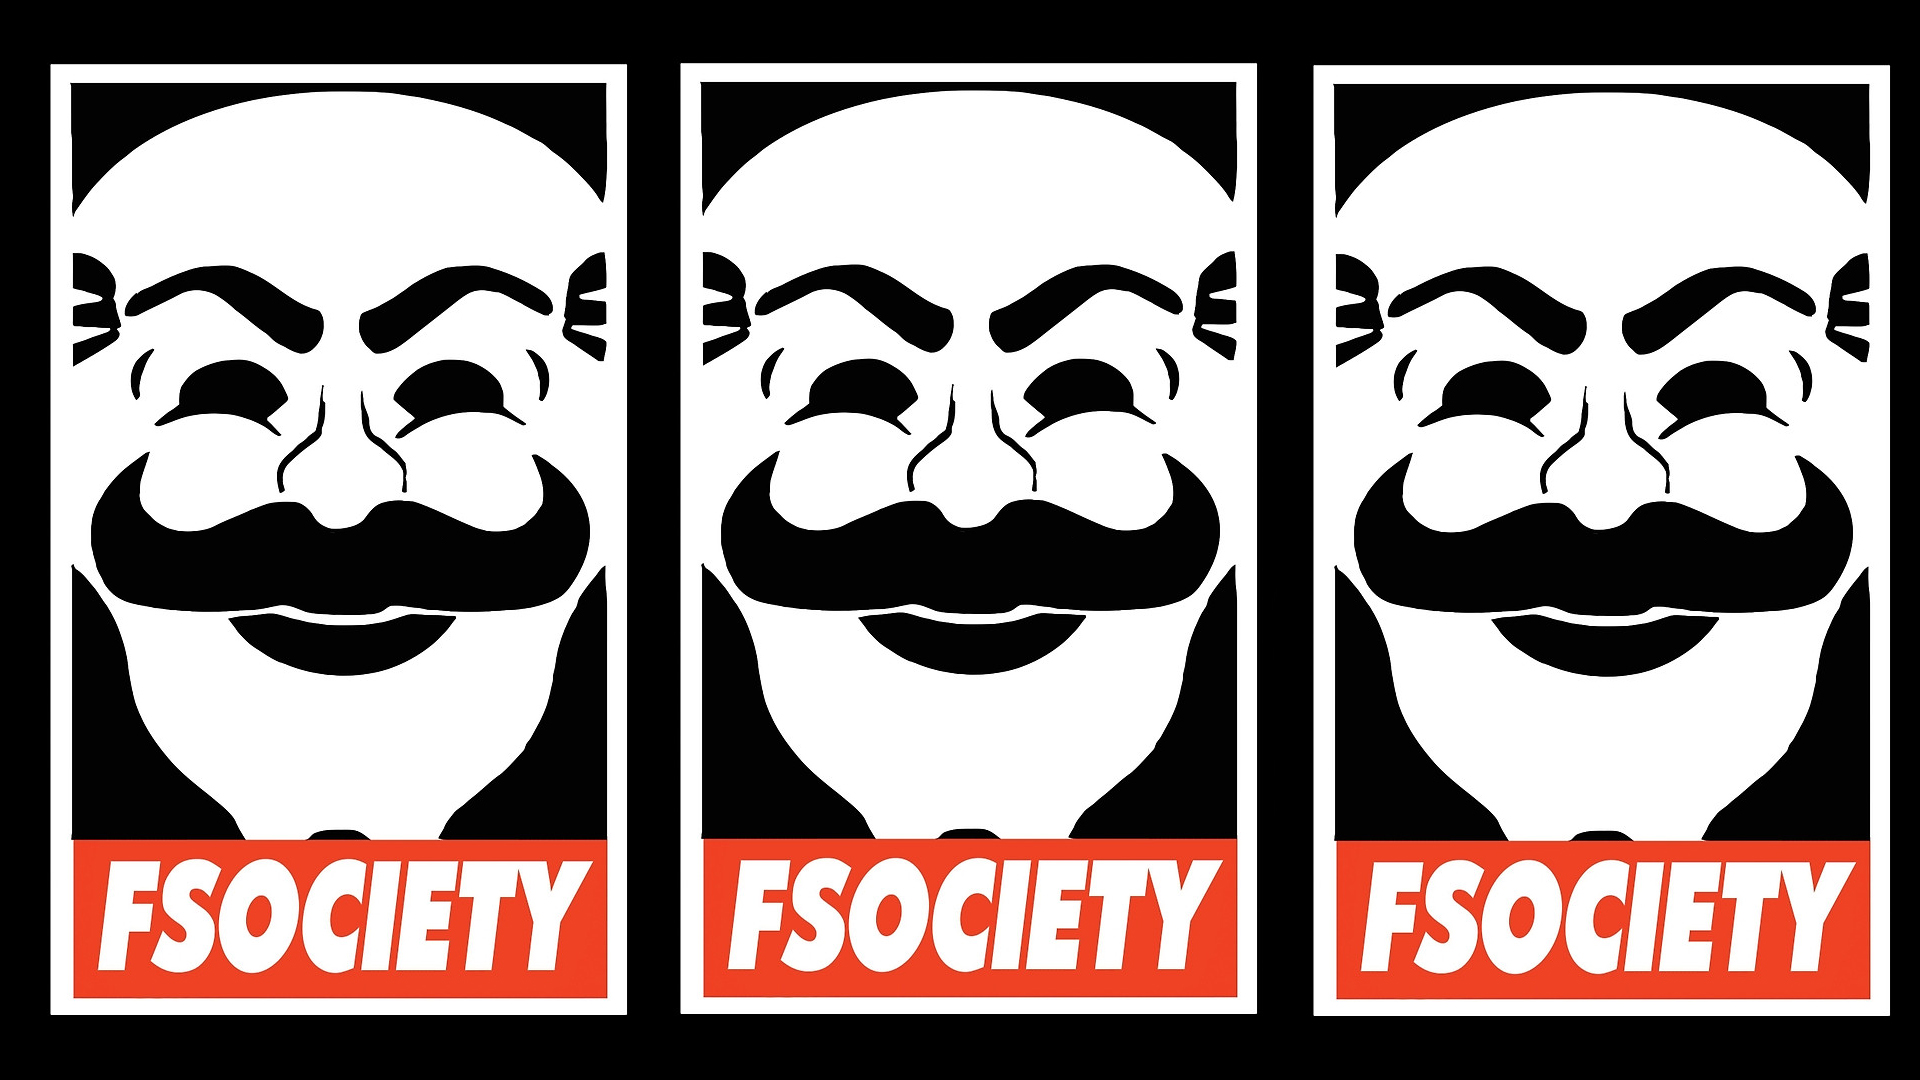 mr robot fsociety hackers 2016